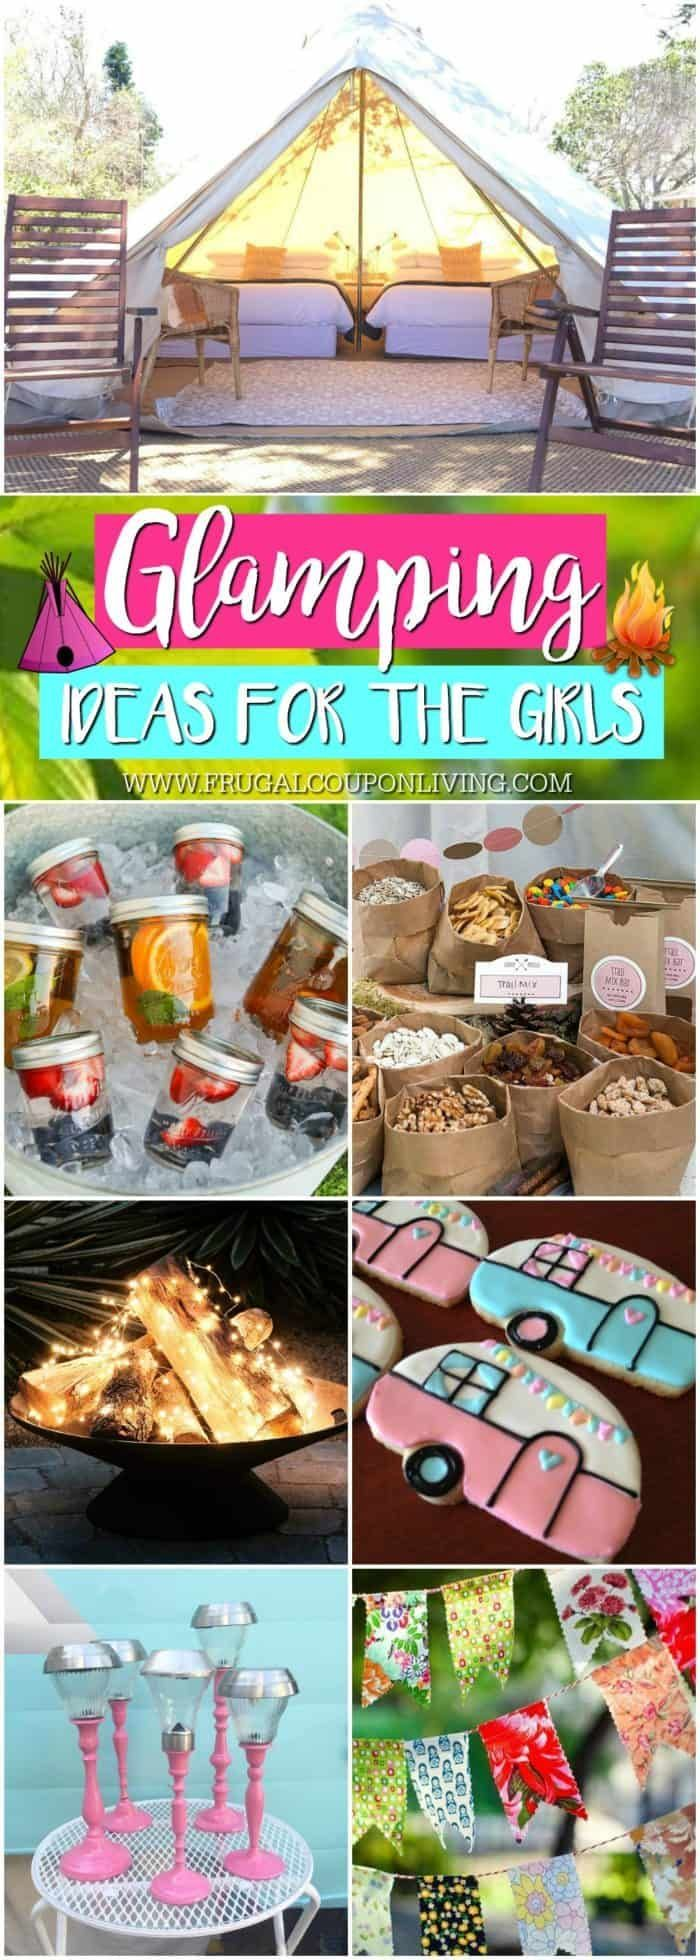 Glamping ideas for the girls! Glamping ideas for the ultimate camping tr …